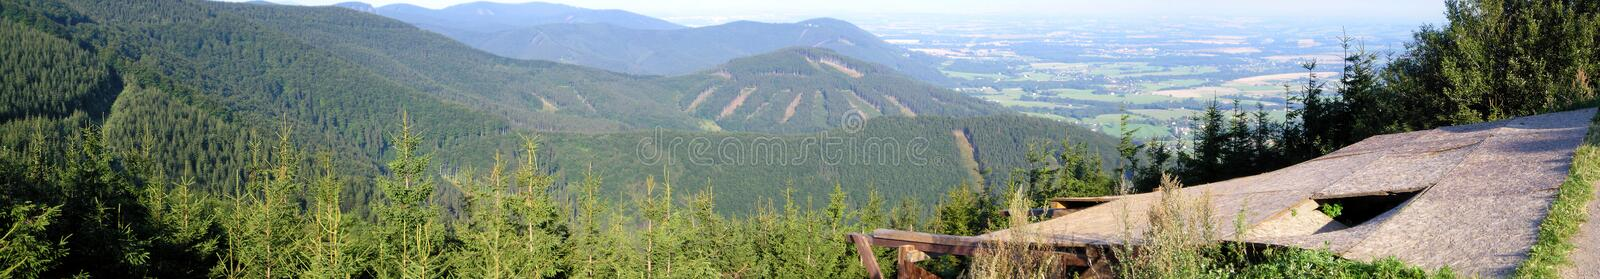 Forested Mountains and a Ramp for Paragliding. Javorovy Hill is a great place for hiking, skiing or paragliding - in this photo you can see a ramp for royalty free stock photo